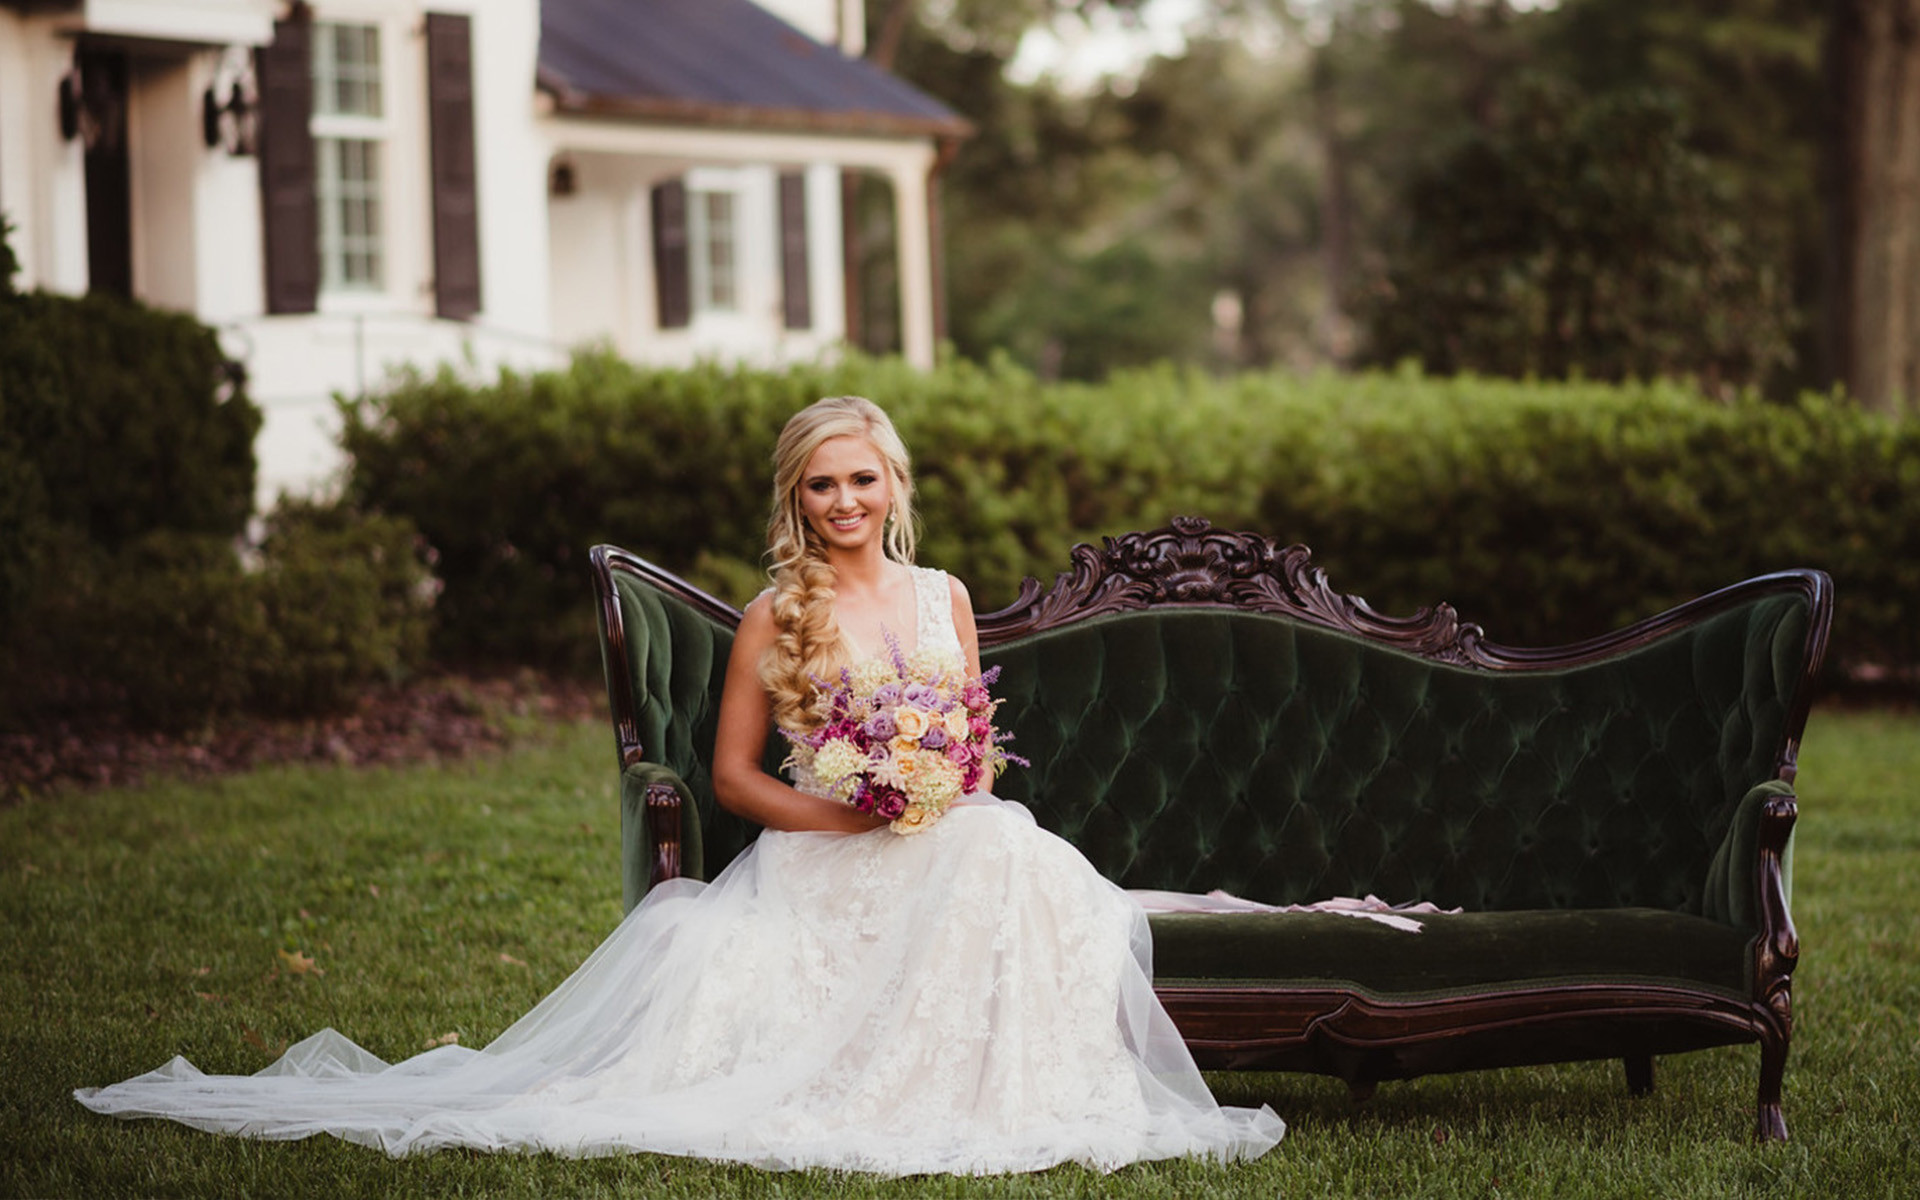 Sweet Lilac, Soft Lavender and Moody Mauves Combine in this Warm Inspiration Shoot